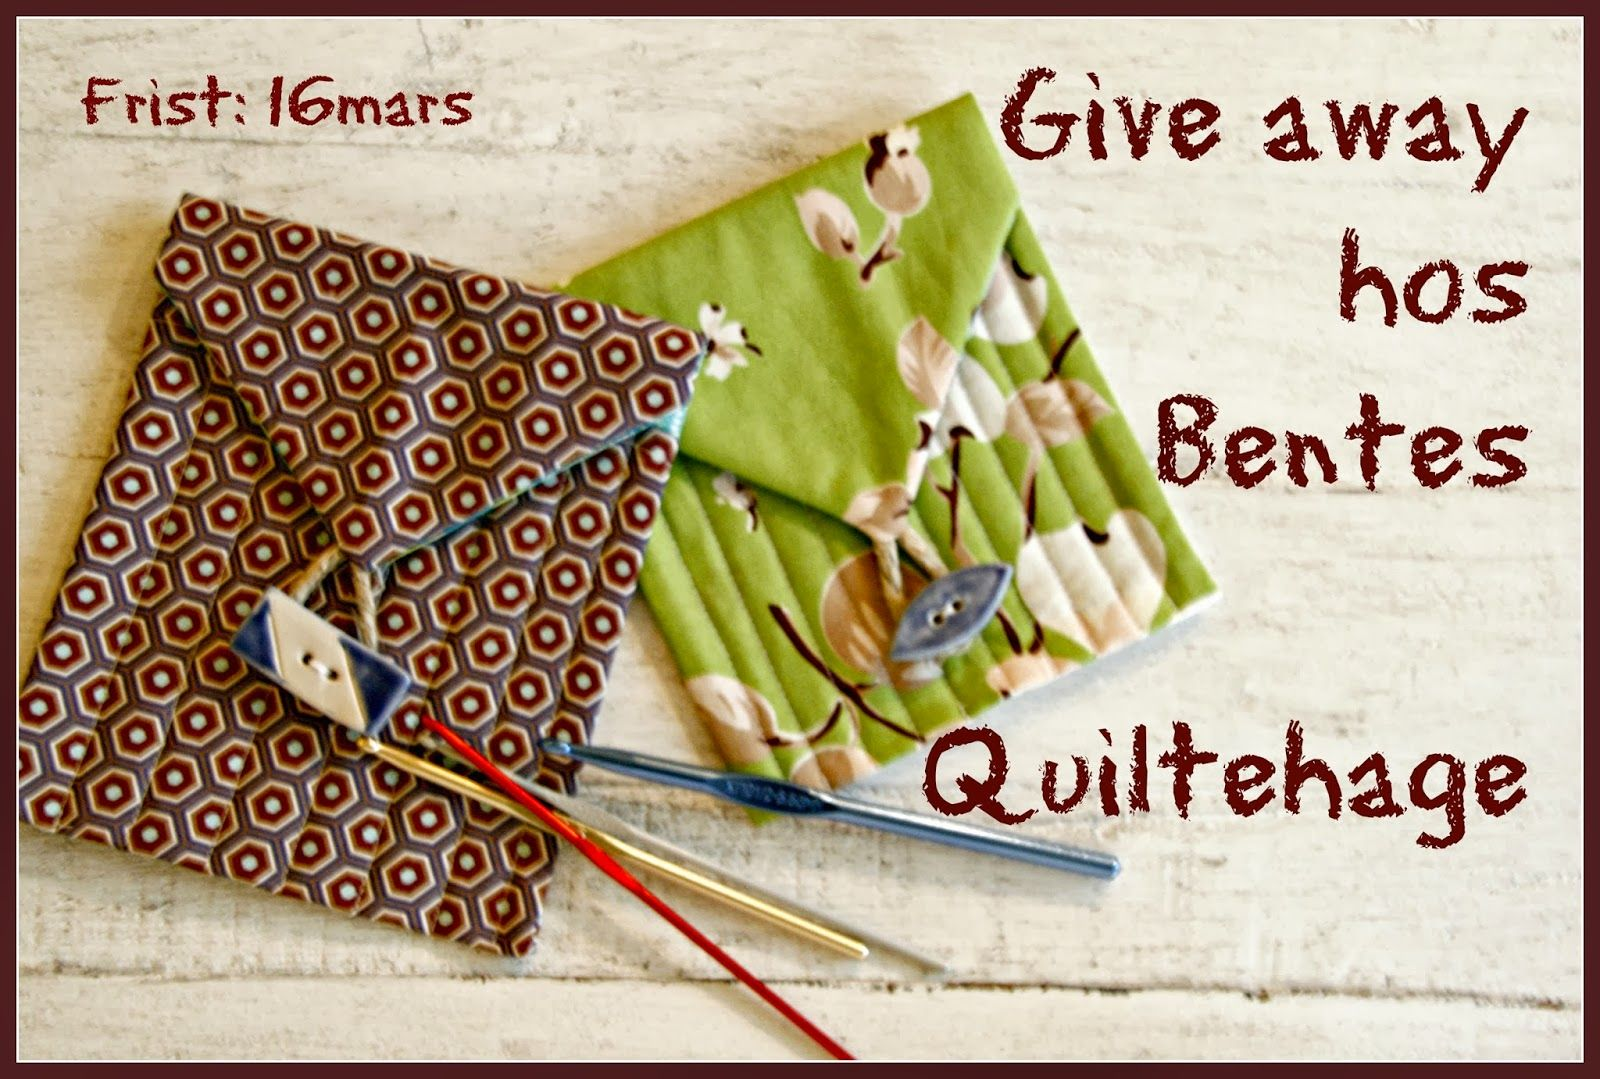 Bentes Quiltehage: Give away !